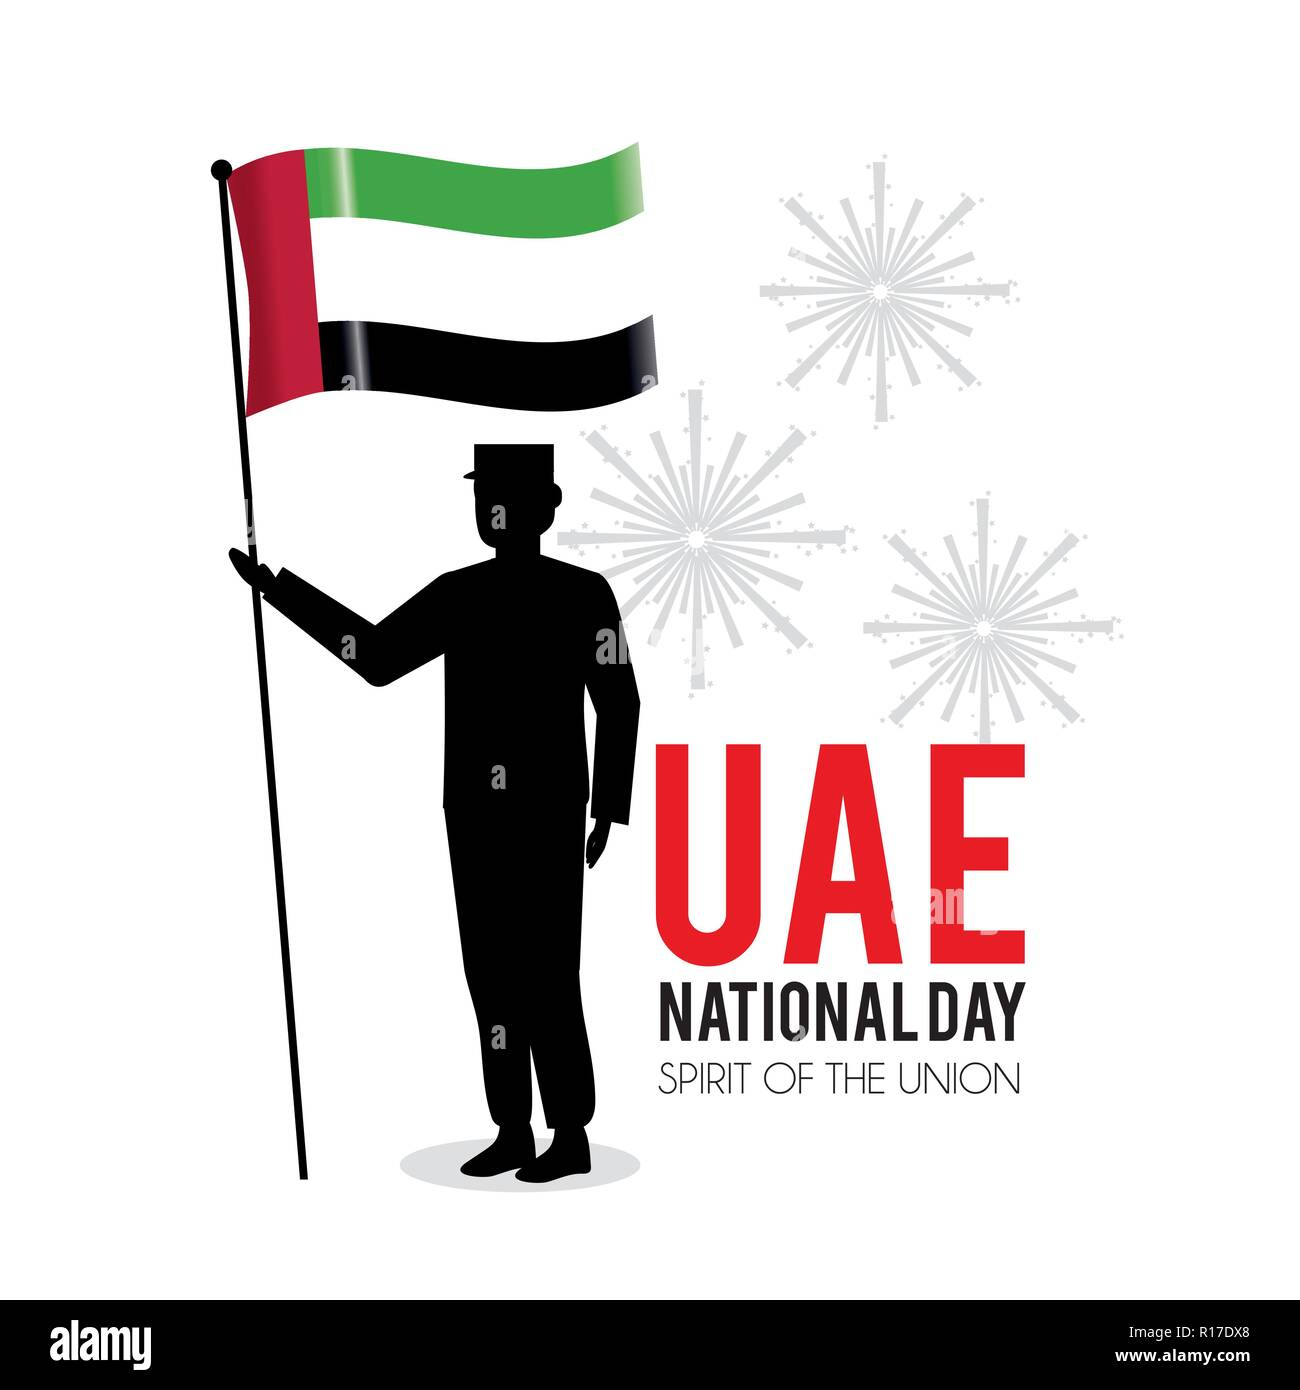 soldier with uae flag to national day - Stock Image